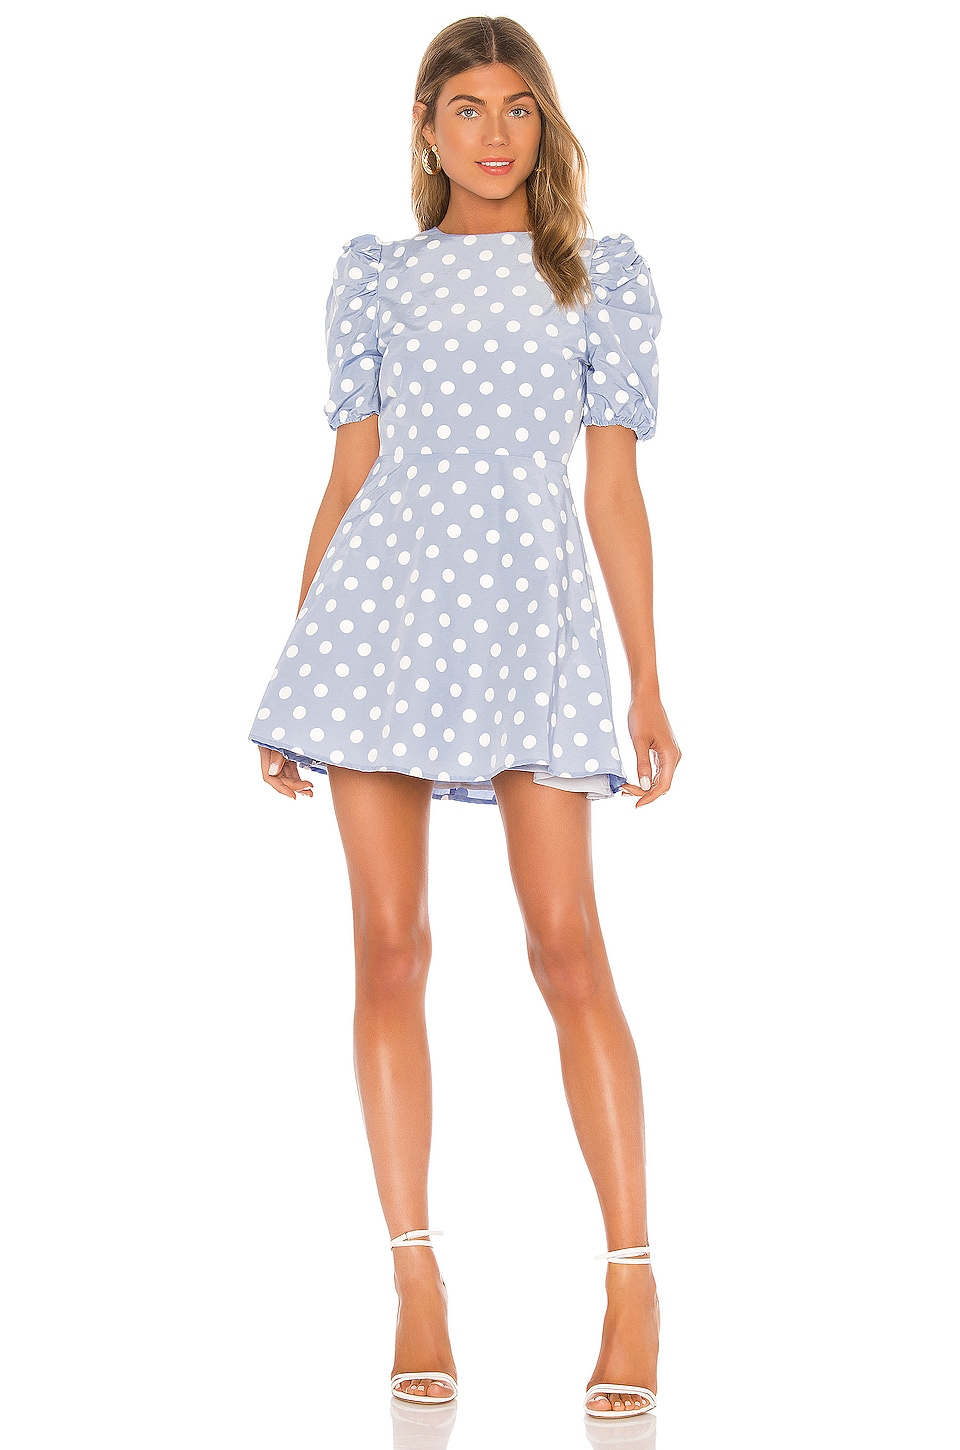 MAJORELLE Cordella Mini Dress in Baby Blue Dot